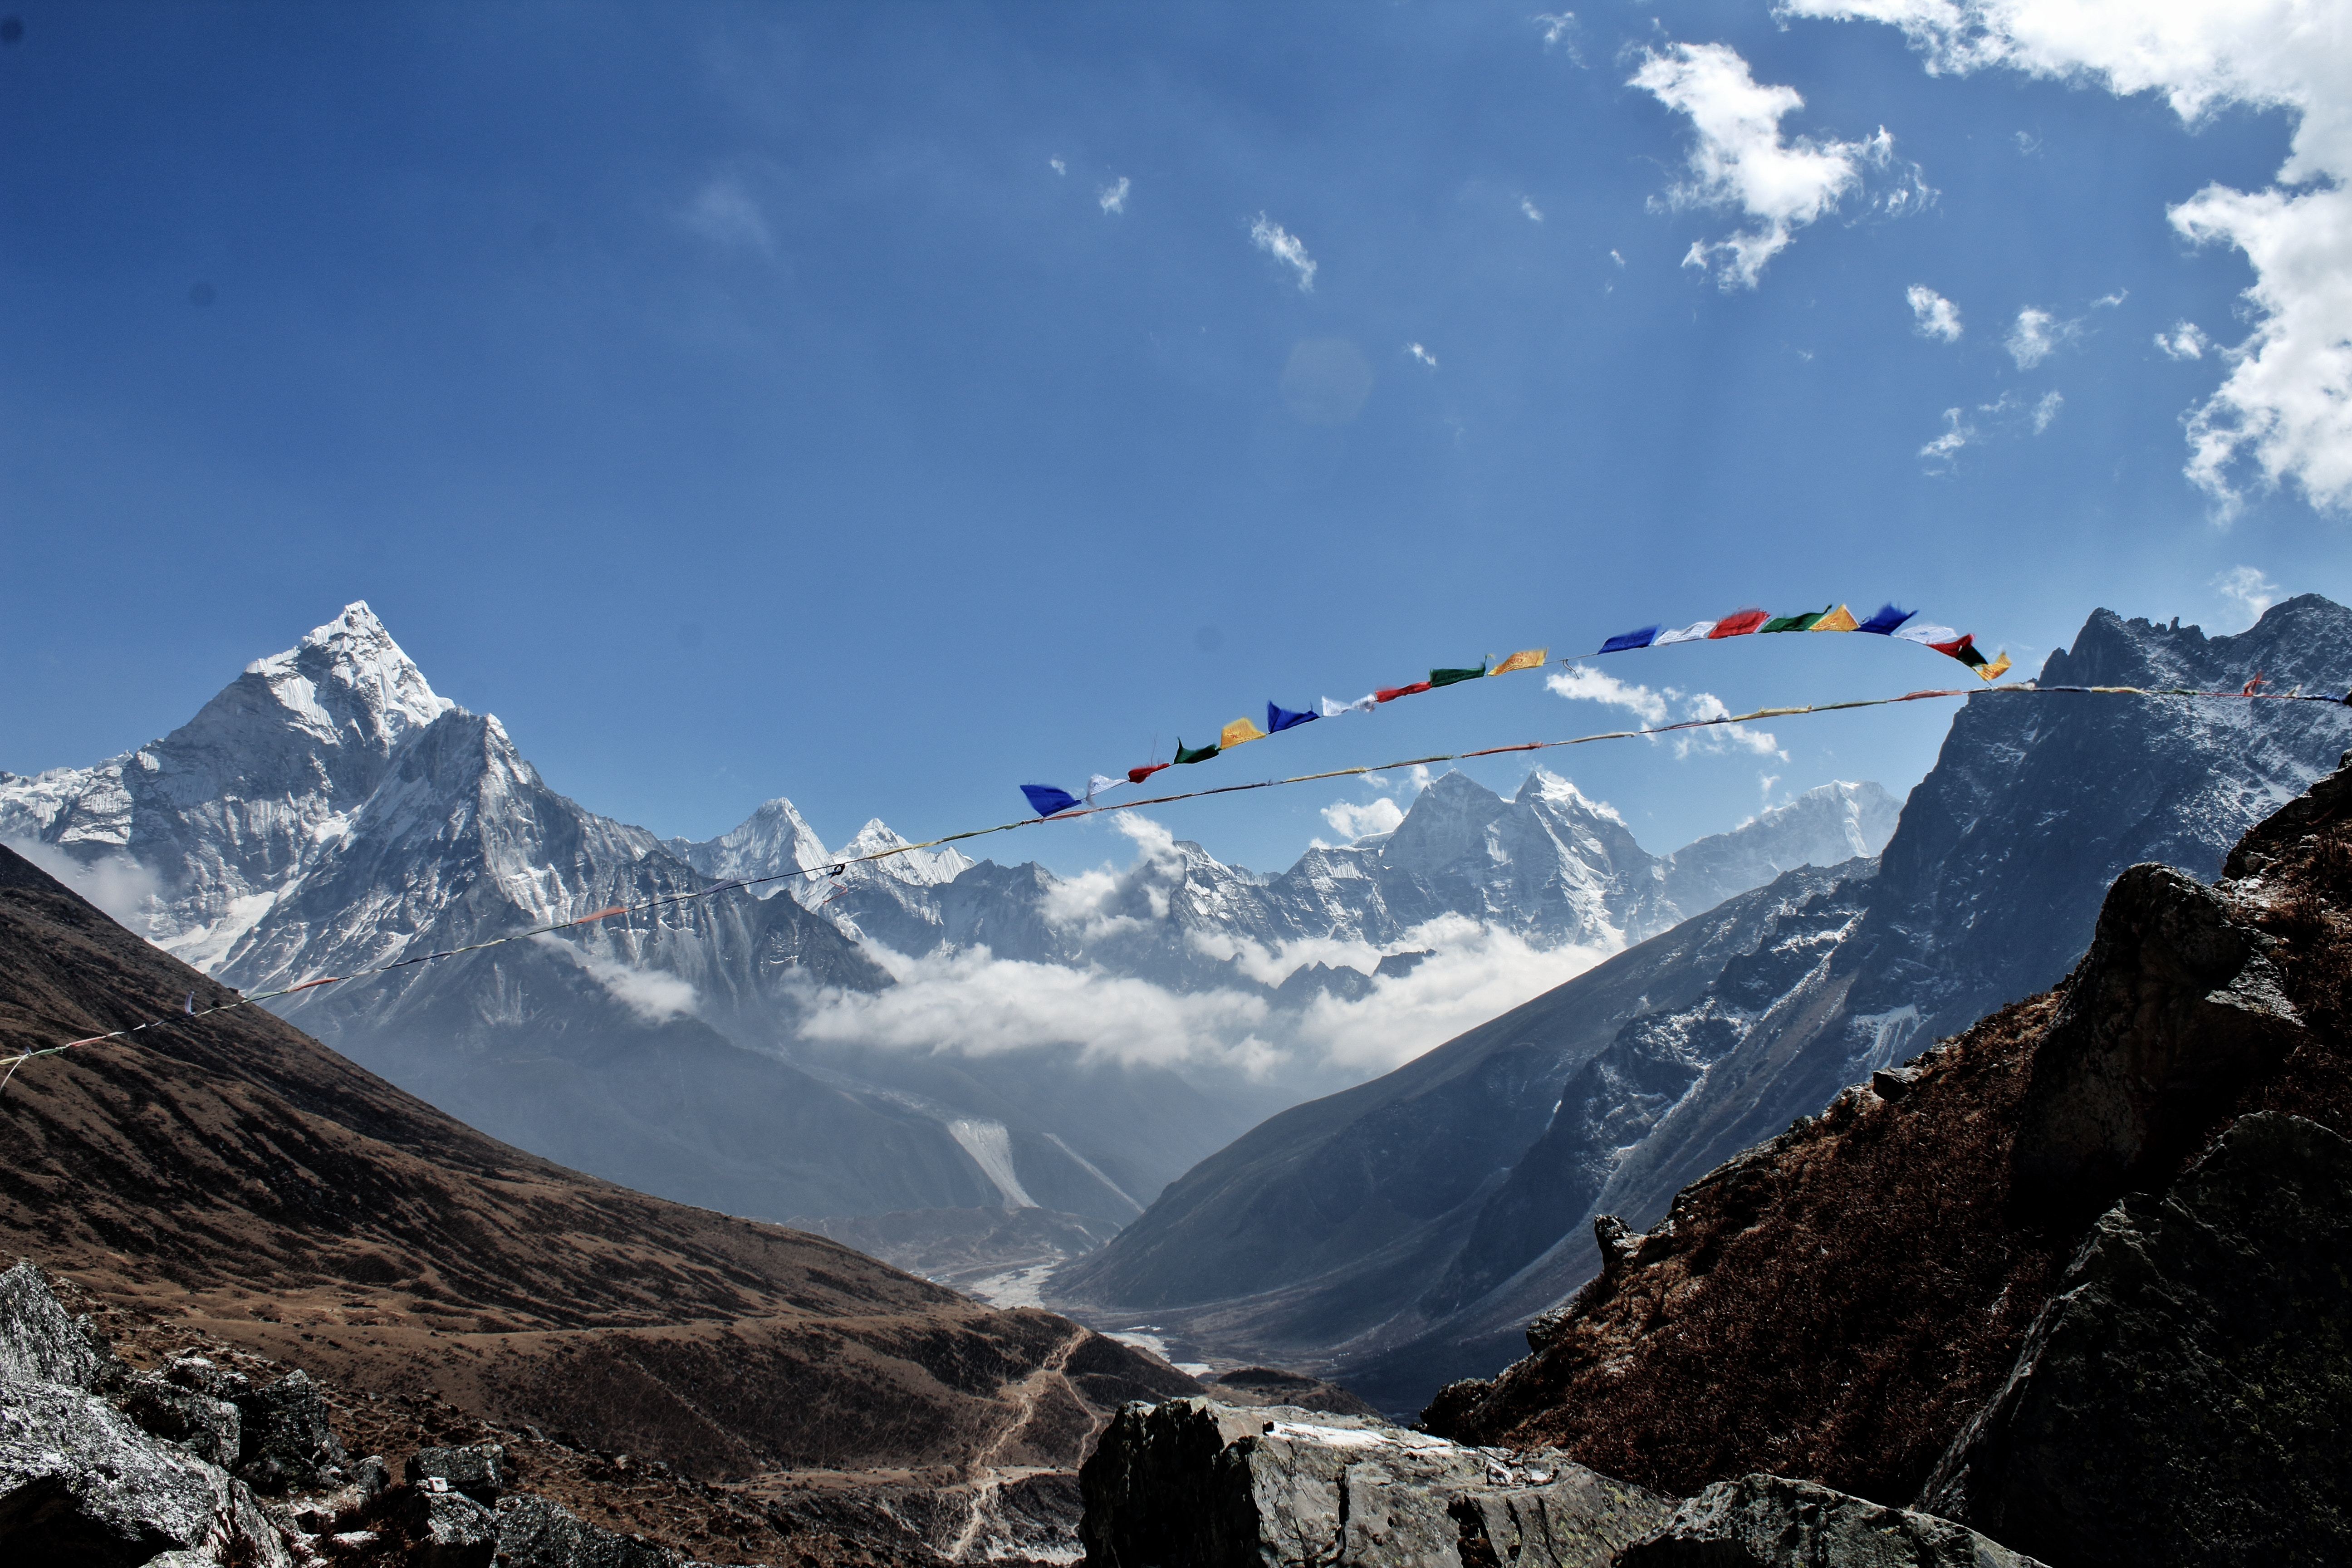 Mountain on the way to Everest